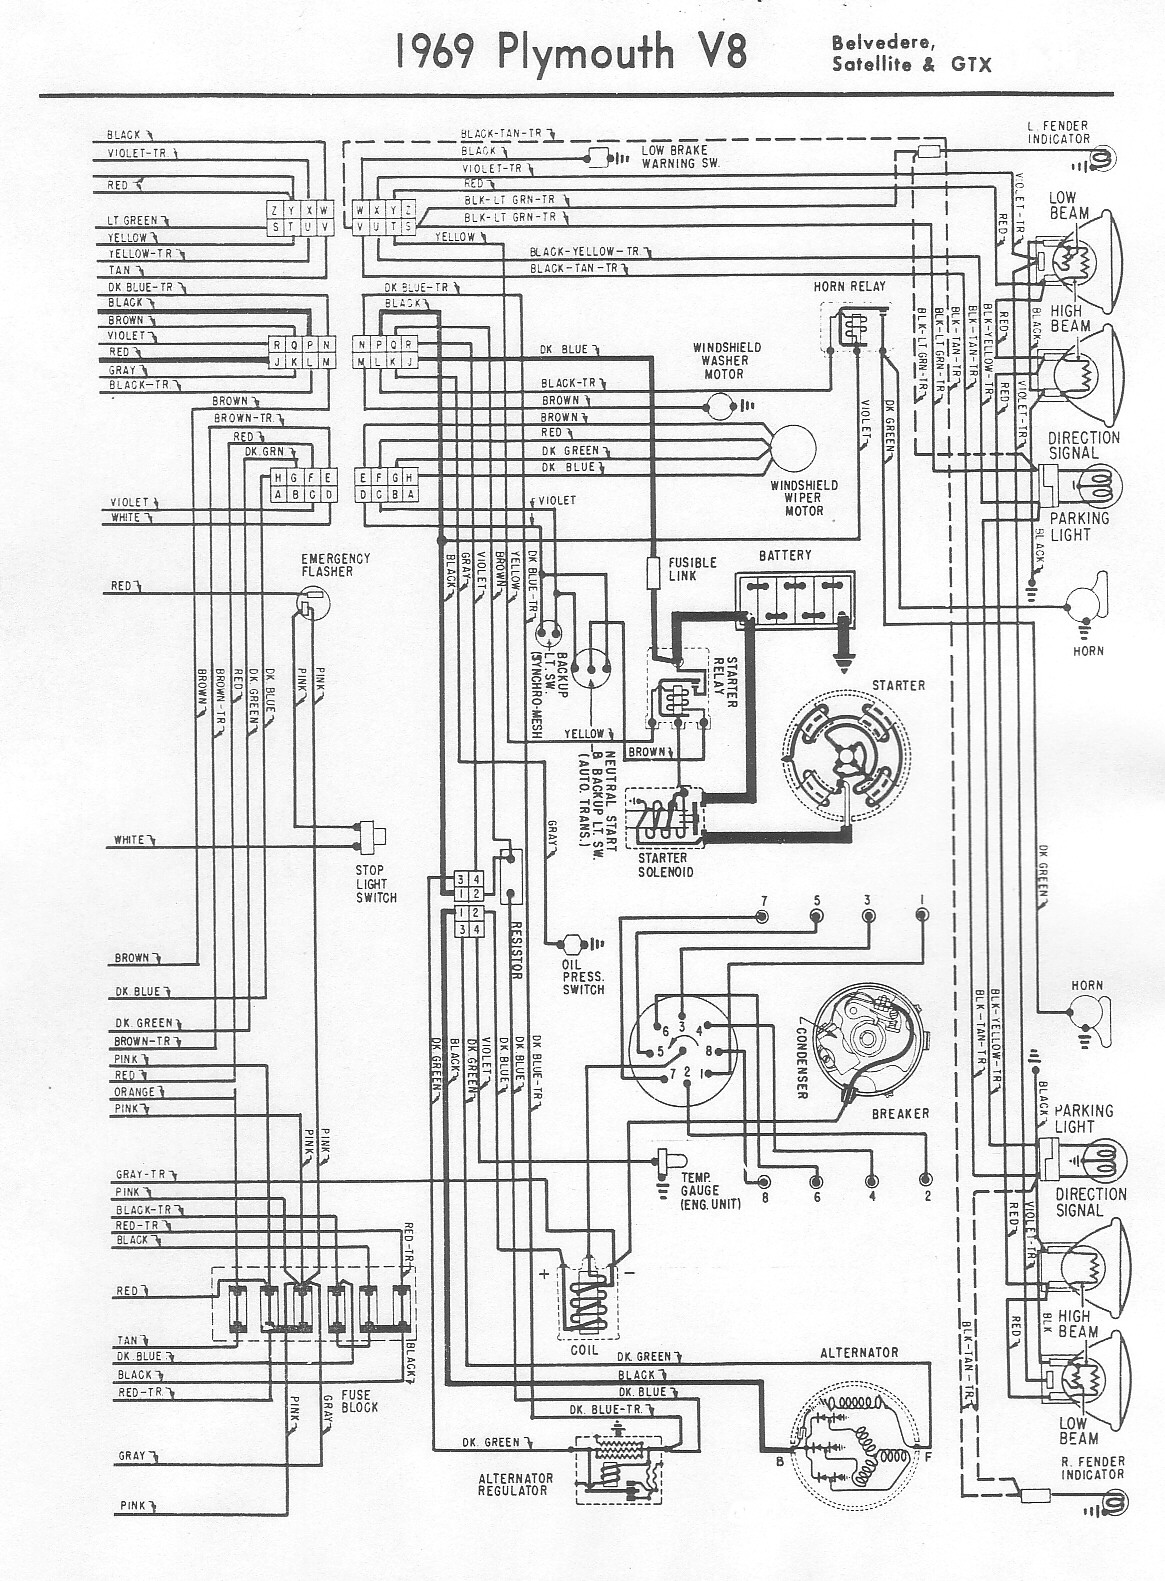 1967 Gtx Wiring Diagram Schematics Diagrams Ford F100 1970 Plymouth Belvedere Color Electrical Work Rh Aglabs Co